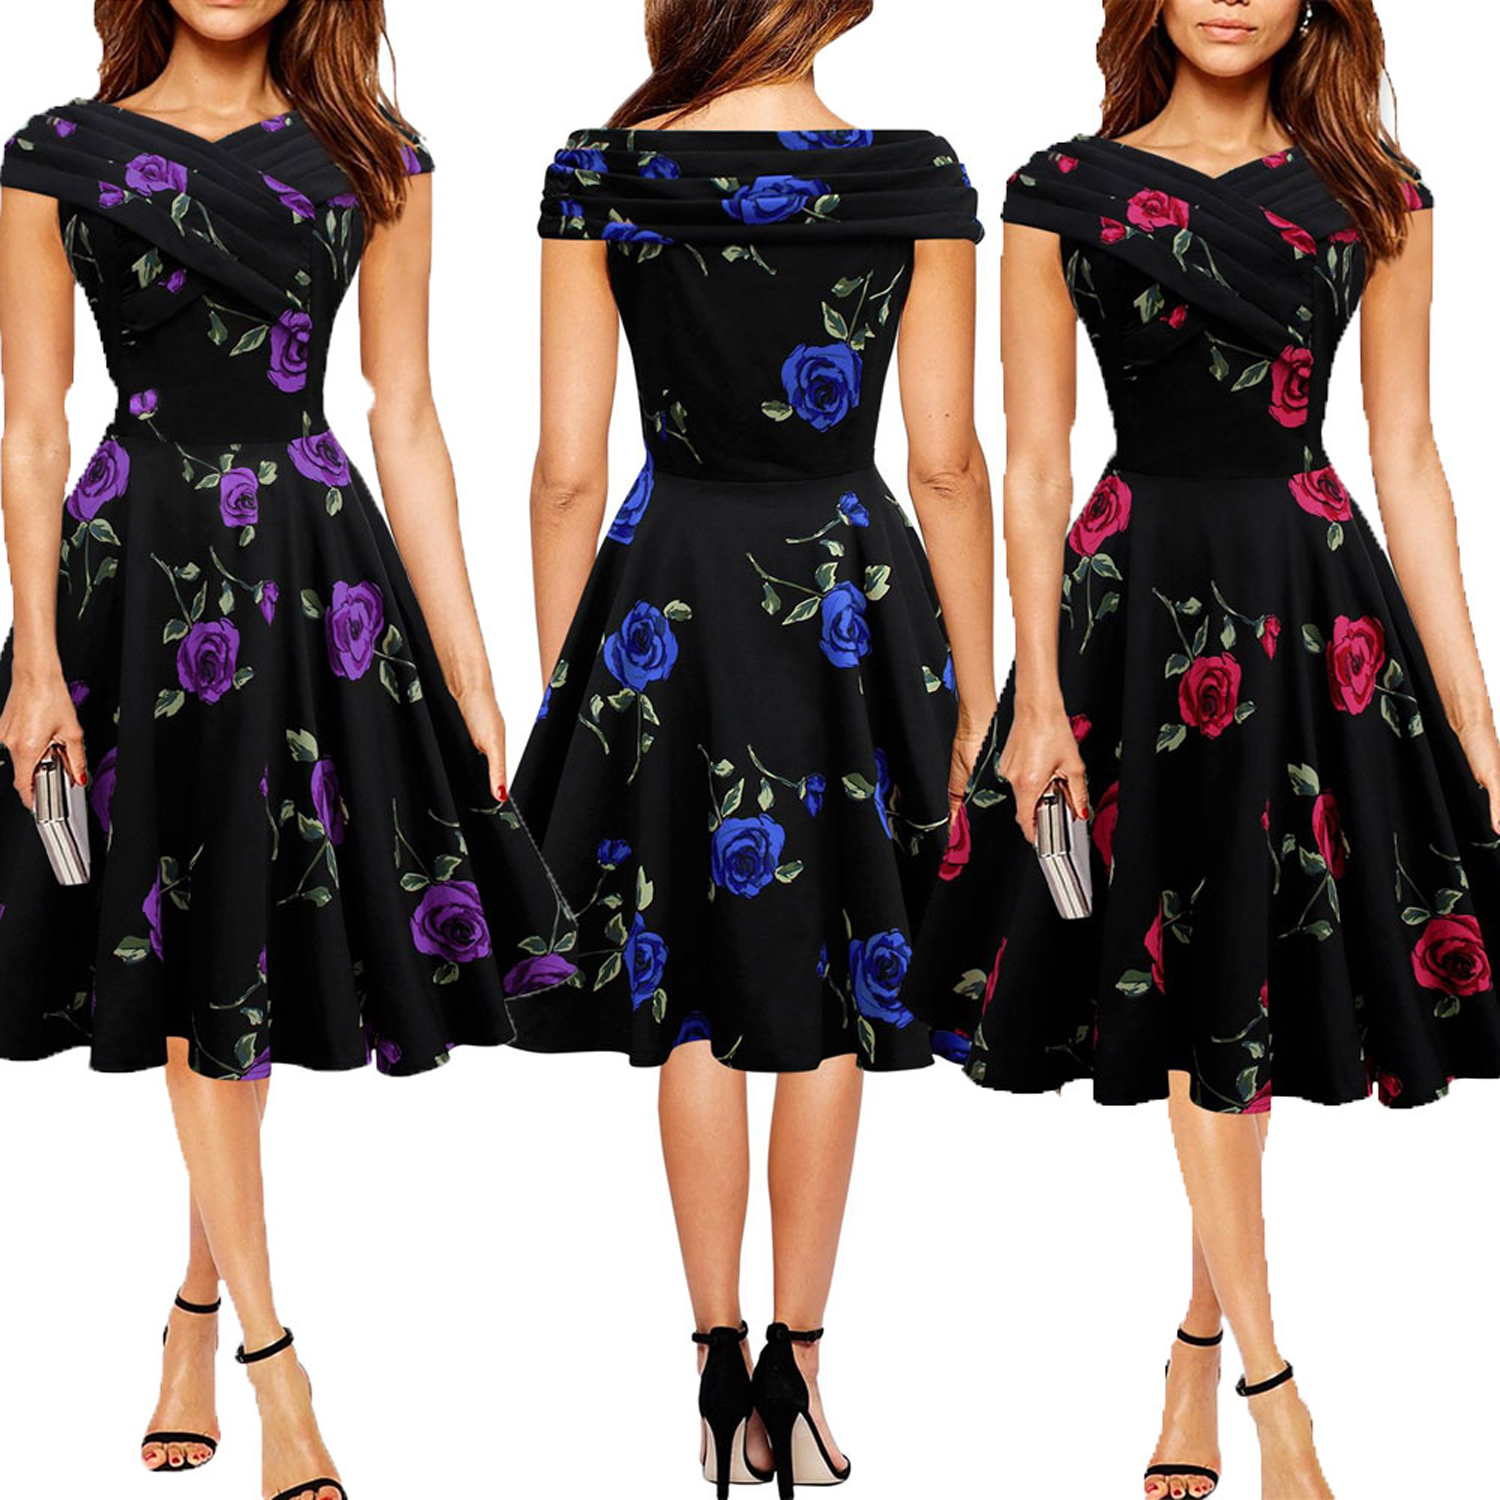 New Women Vintage Rockabilly Dress Slash Neck Floral Print Prom Gown Party Dresses  Retro Elegant OL Clothes-in Dresses from Women s Clothing on ... b5bdbede1